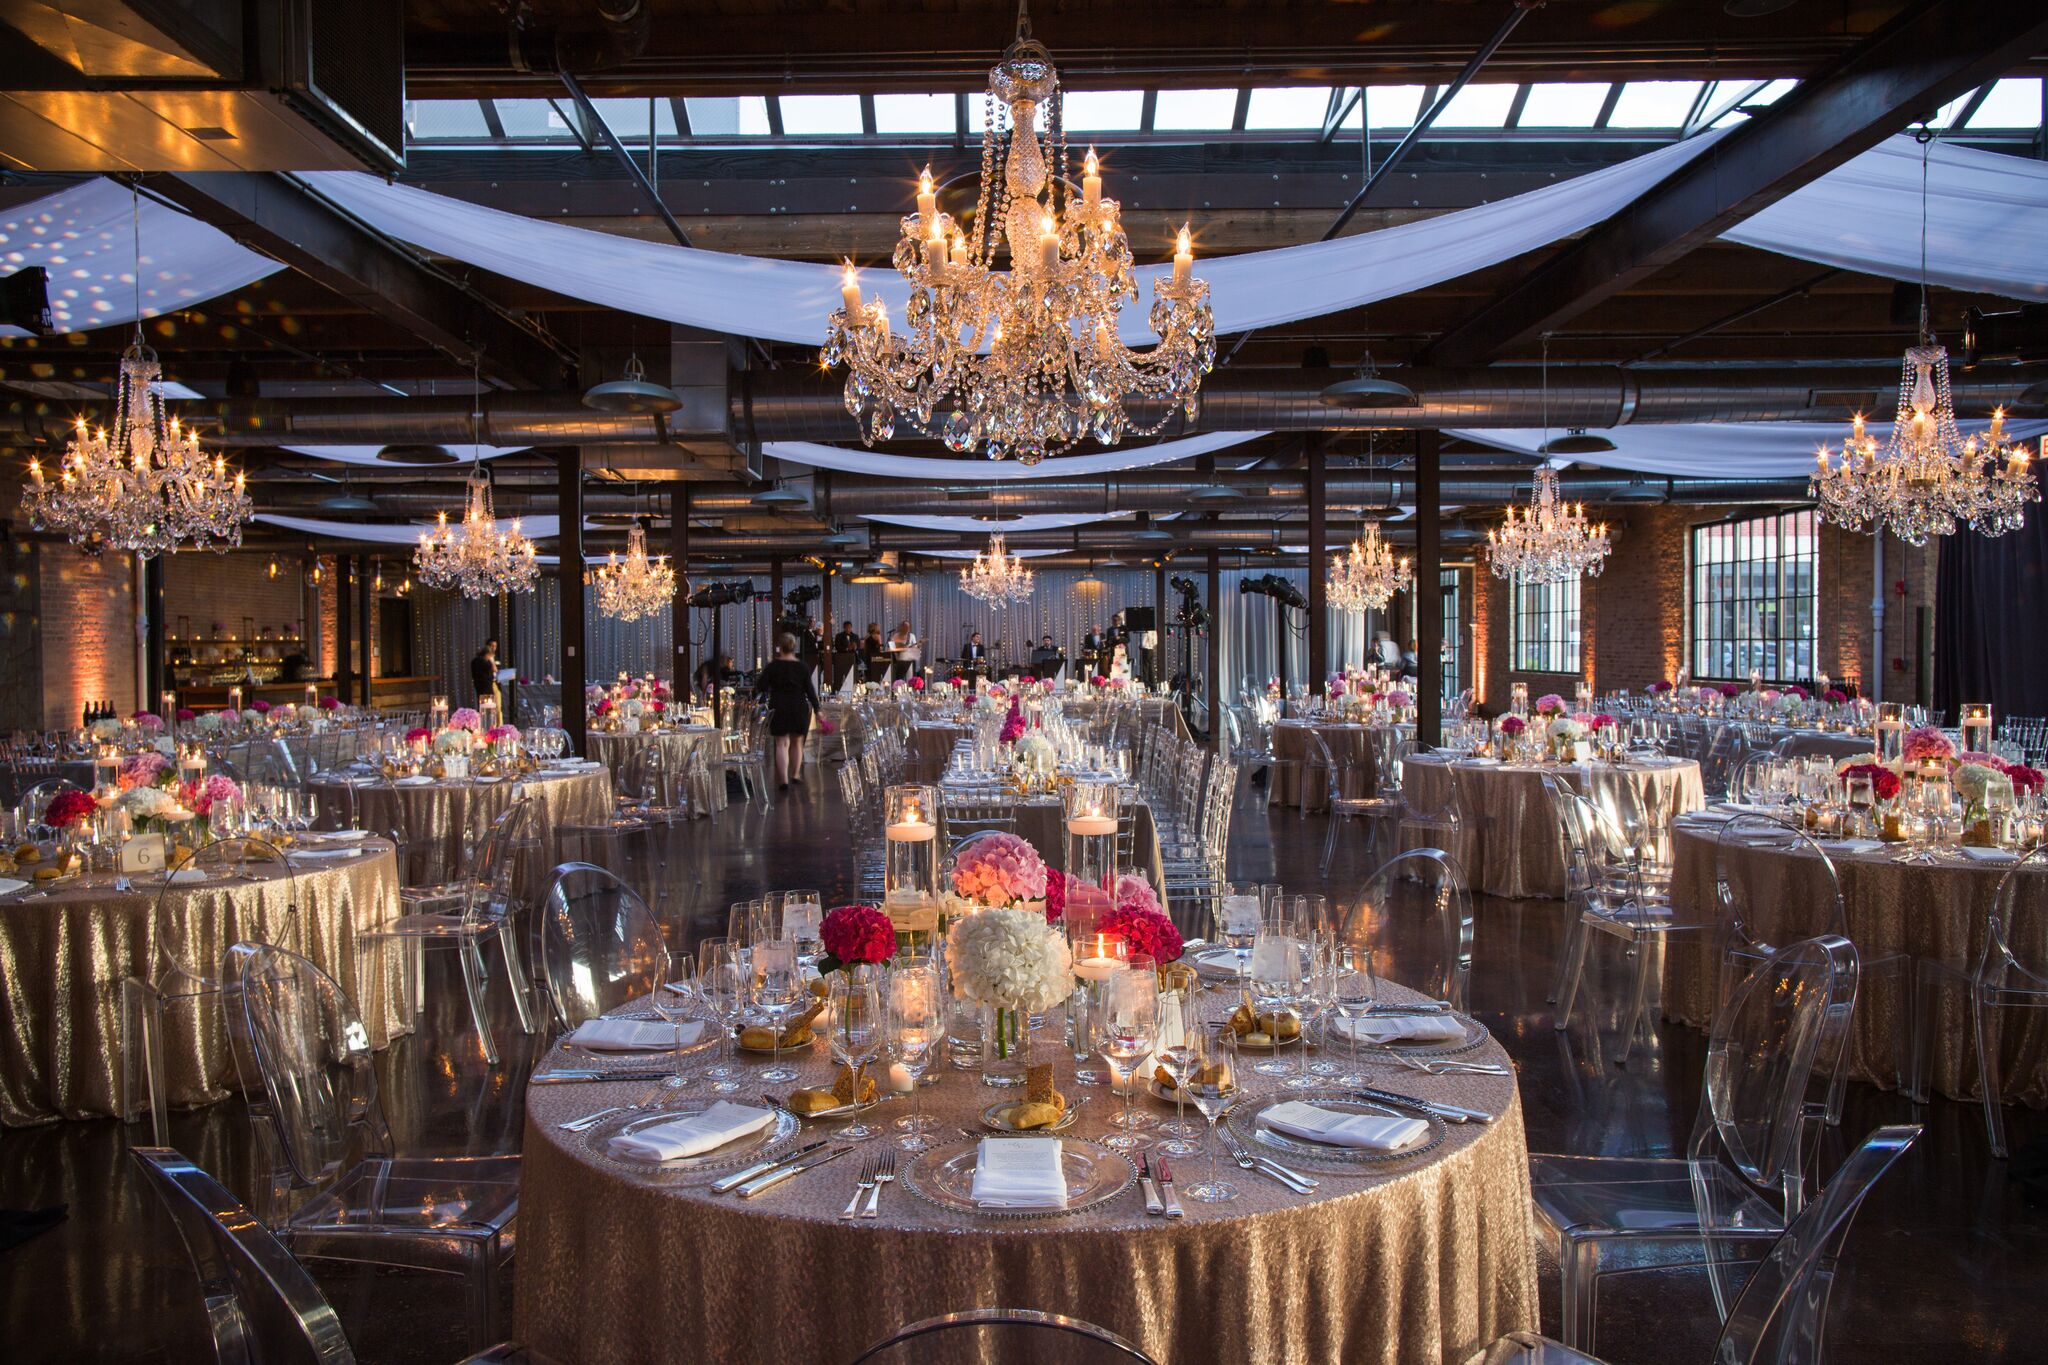 Rustic Glam Wedding at Morgan Manufacturing, Planning & Design by Bliss Weddings & Events, Inc.